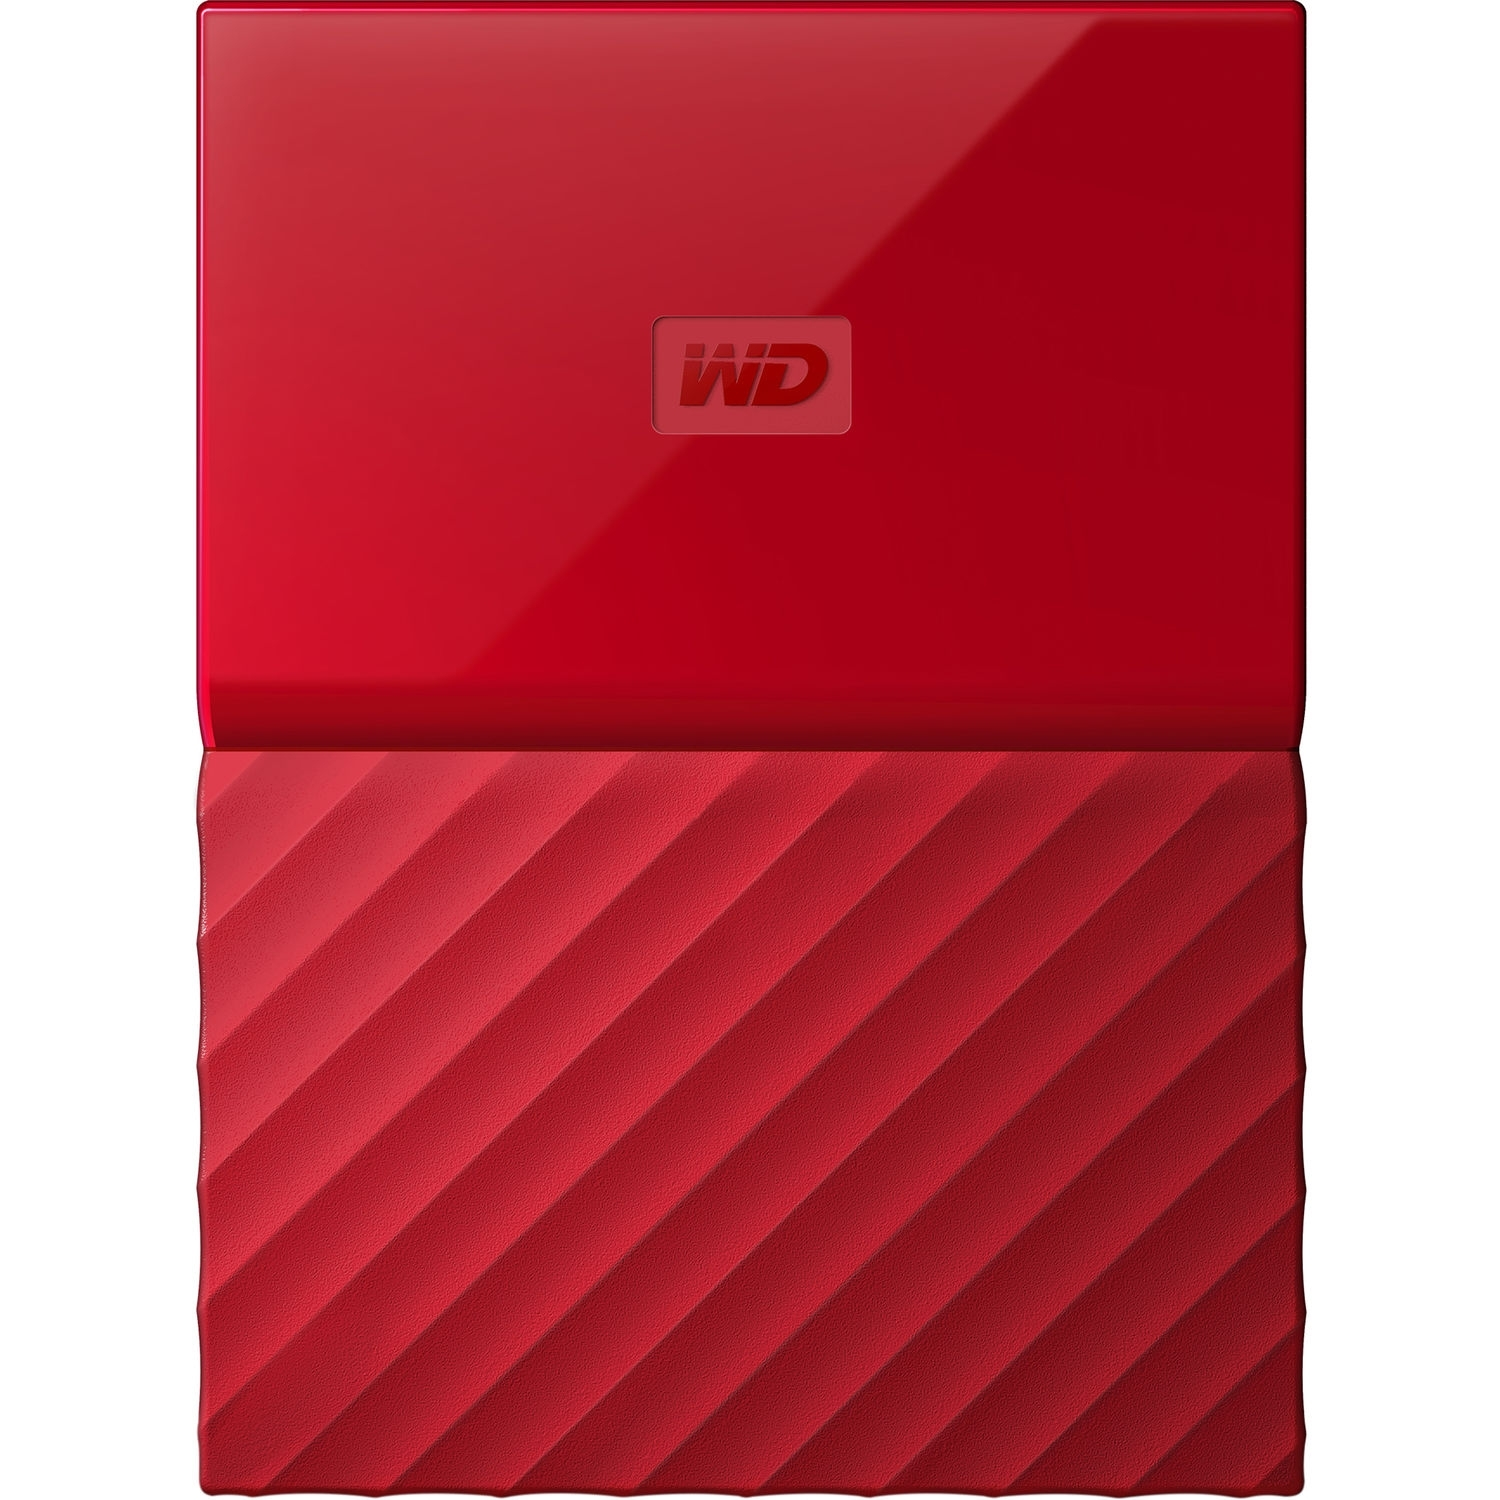 Western-Digital-WD-My-Passport-1TB-2TB-4TB-2-5-034-Portable-External-Hard-Drive-HDD thumbnail 10